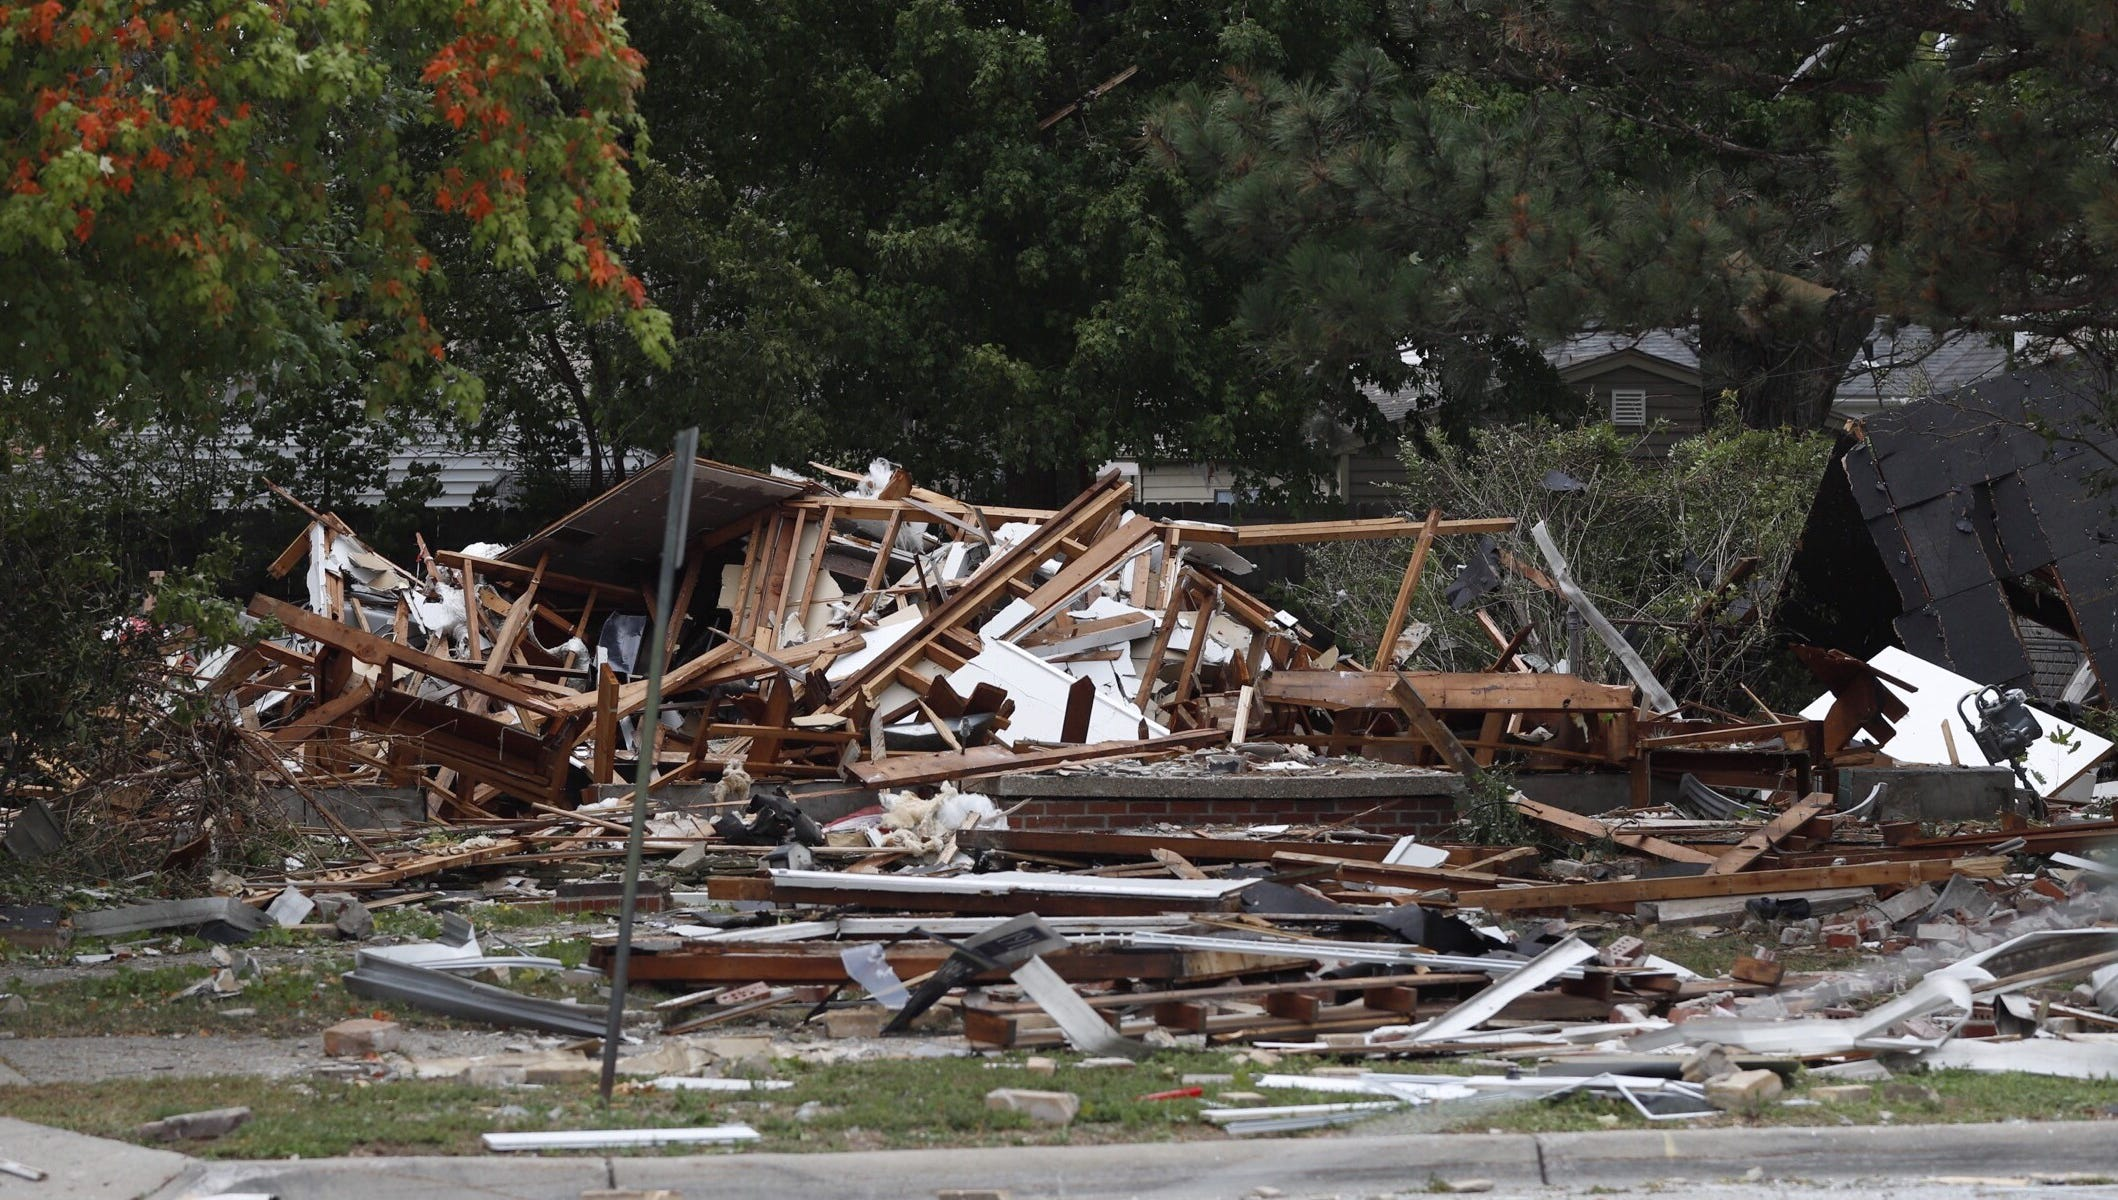 Powerful explosion levels Harper Woods home, leaves 2 hurt